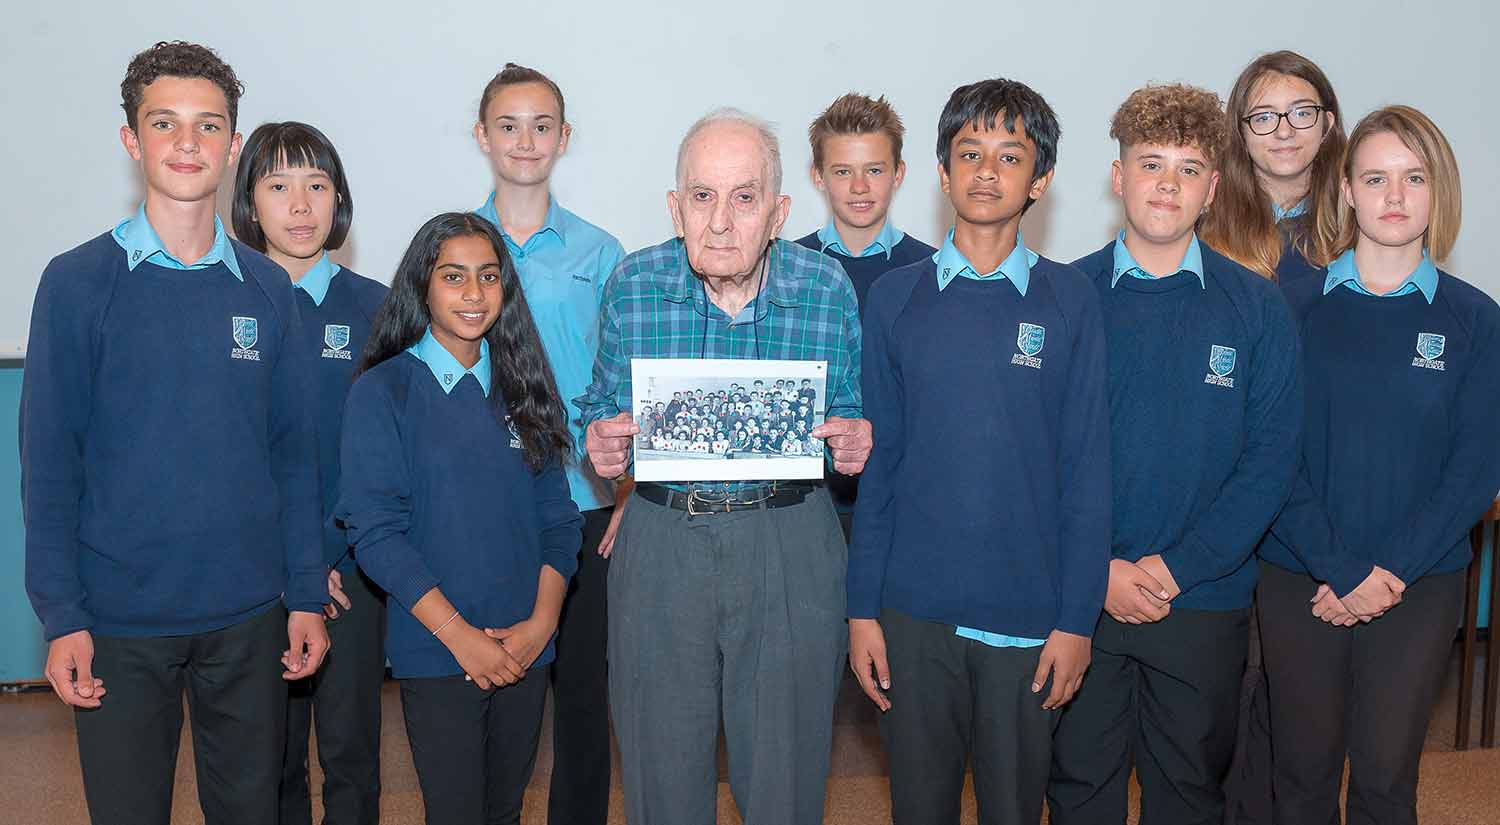 Frank Bright with pupils from Northgate High School